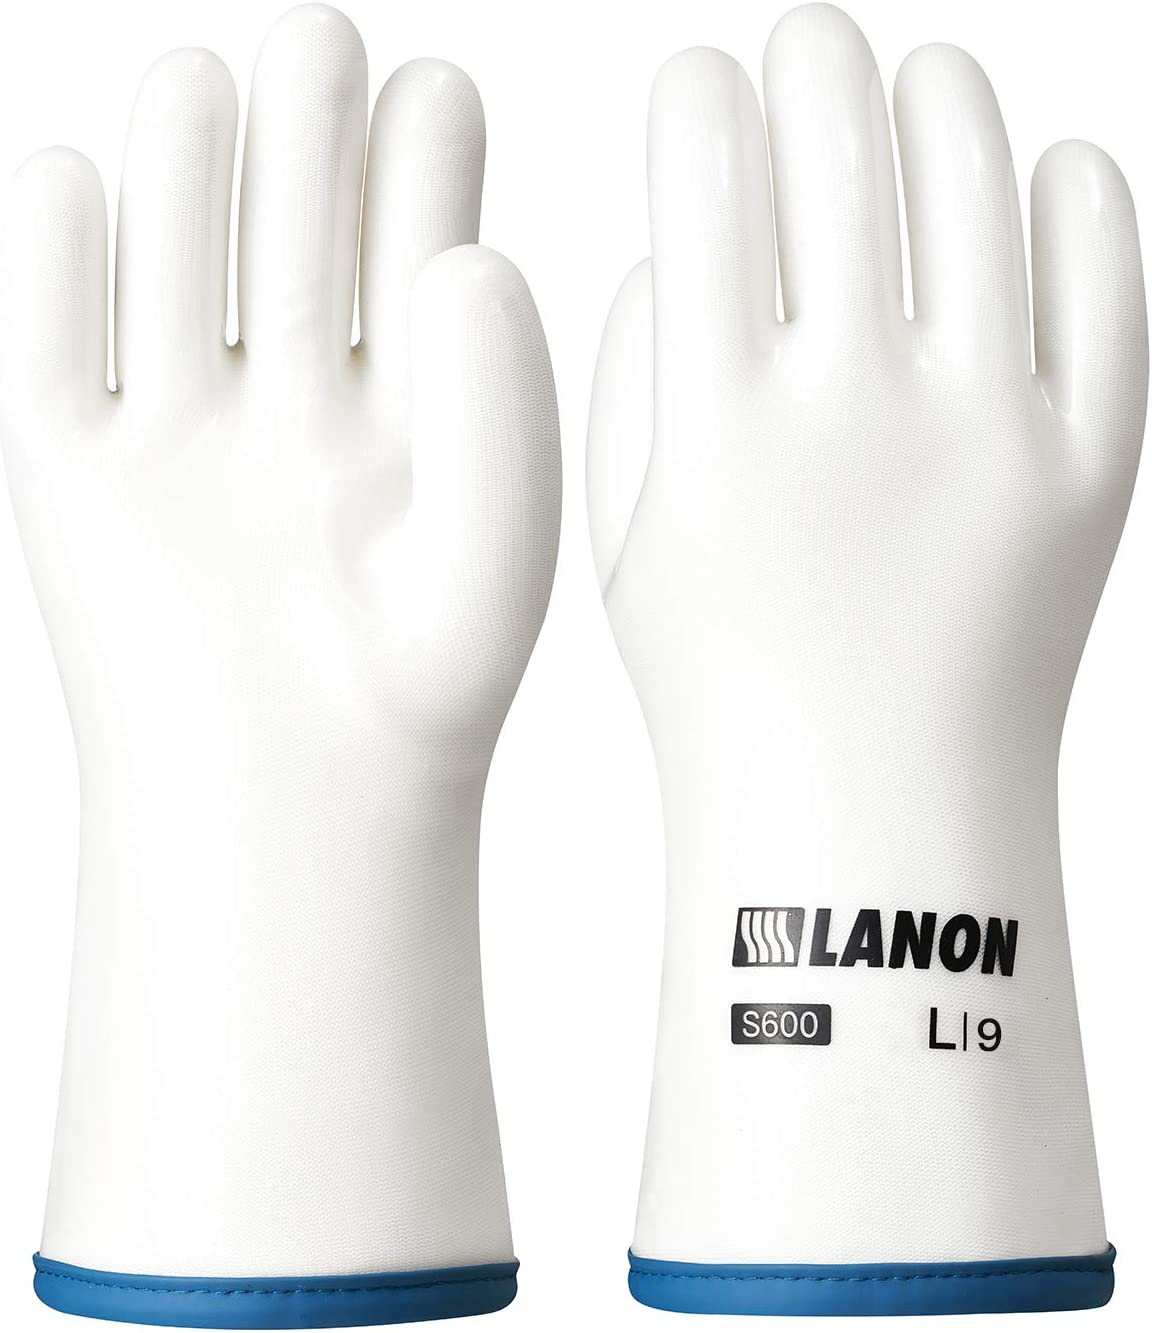 LANON Protection Heat Resistant Oven Mitts, Liquid Silicone Gloves with Fingers for Barbecue, Baking, Cooking, BPA Free, Large